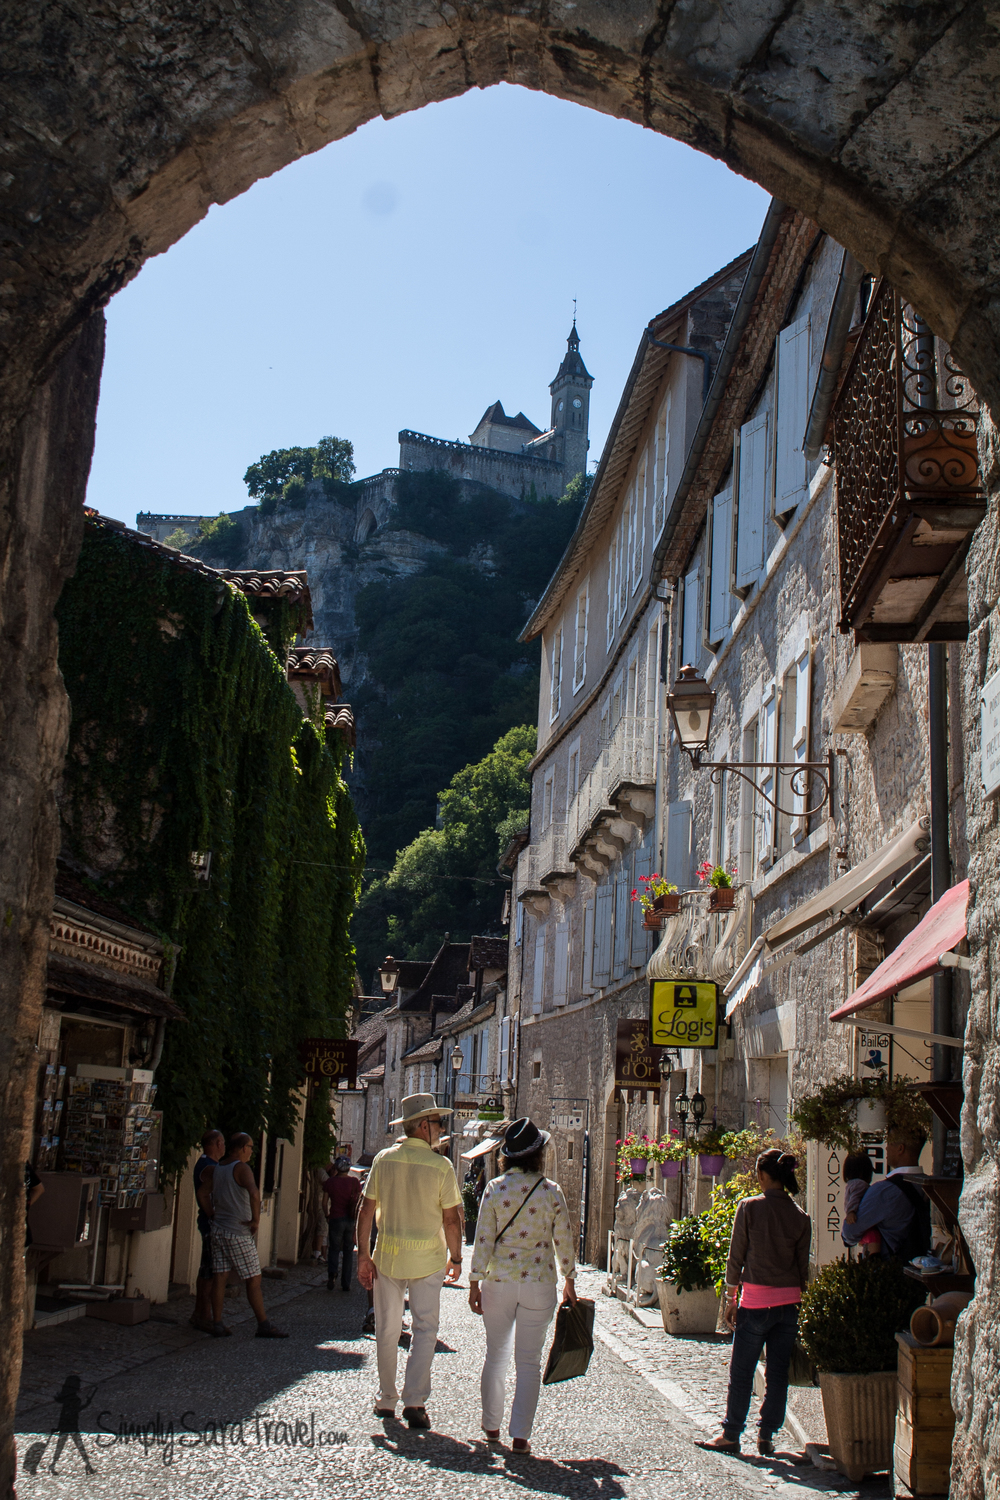 Streets of Rocamadour, France